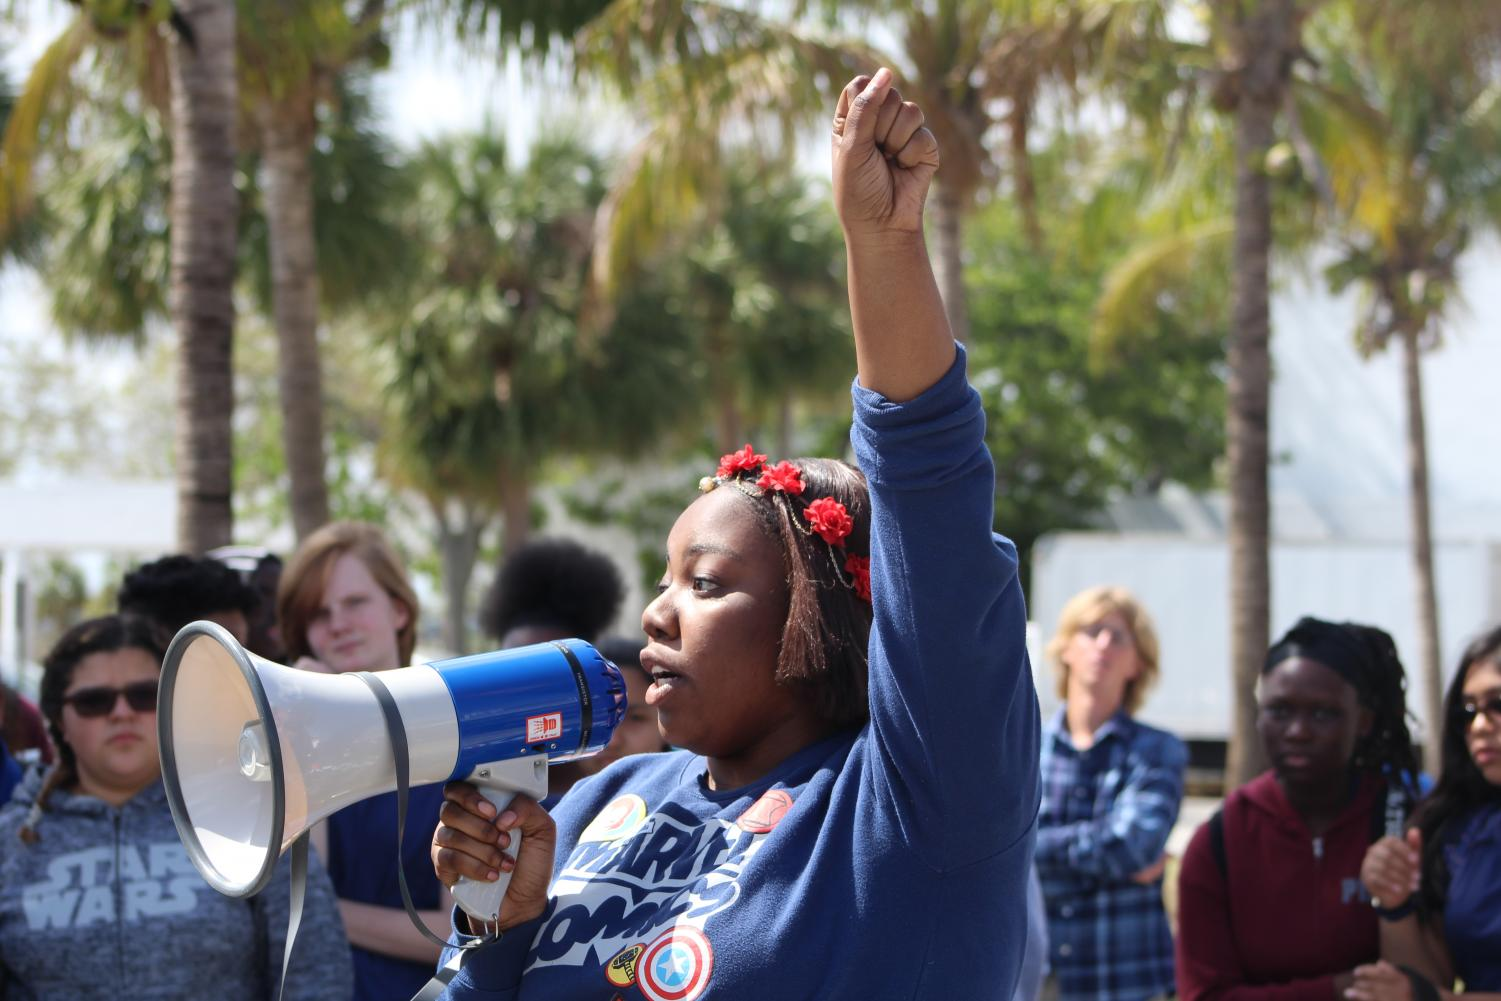 RISE UP: Hurricanes call for increased gun control during a walkout honoring the victims and survivors of the Marjory Stoneman Douglas High School tragedy, in which a shooter killed 17 students and staff Feb. 14.